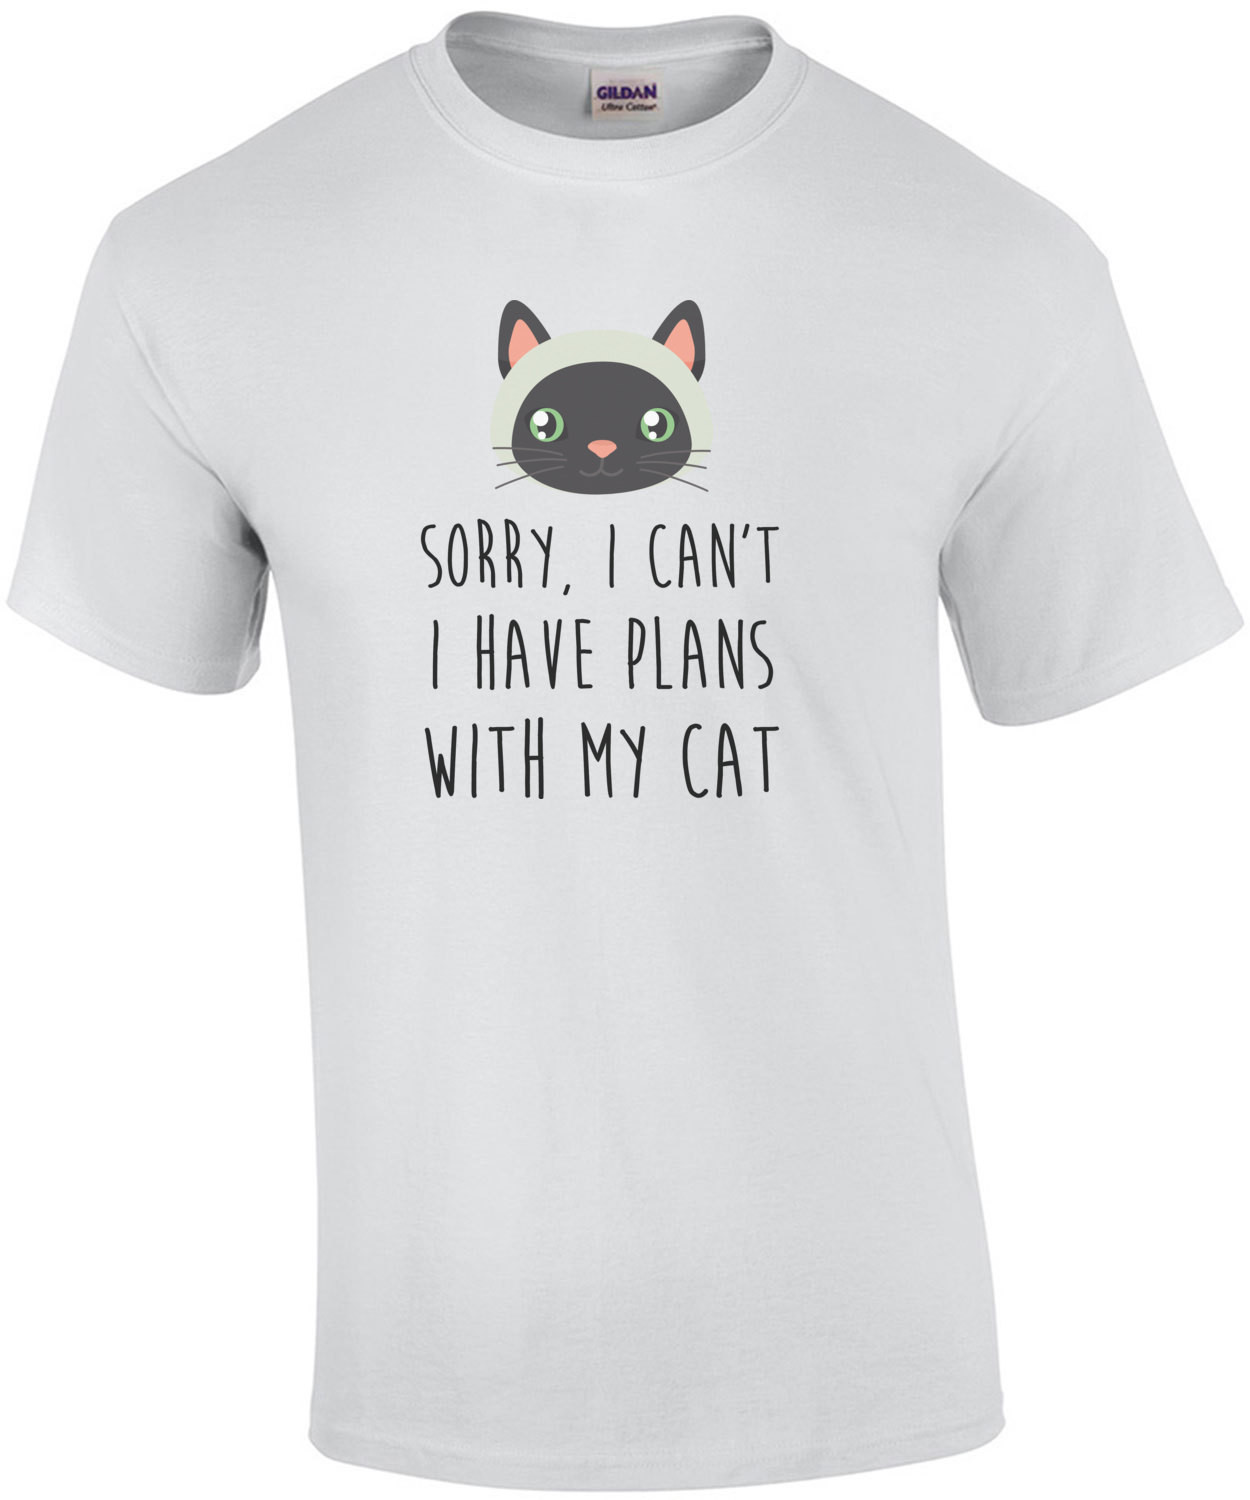 Sorry, I can't I have plans with my cat - funny cat